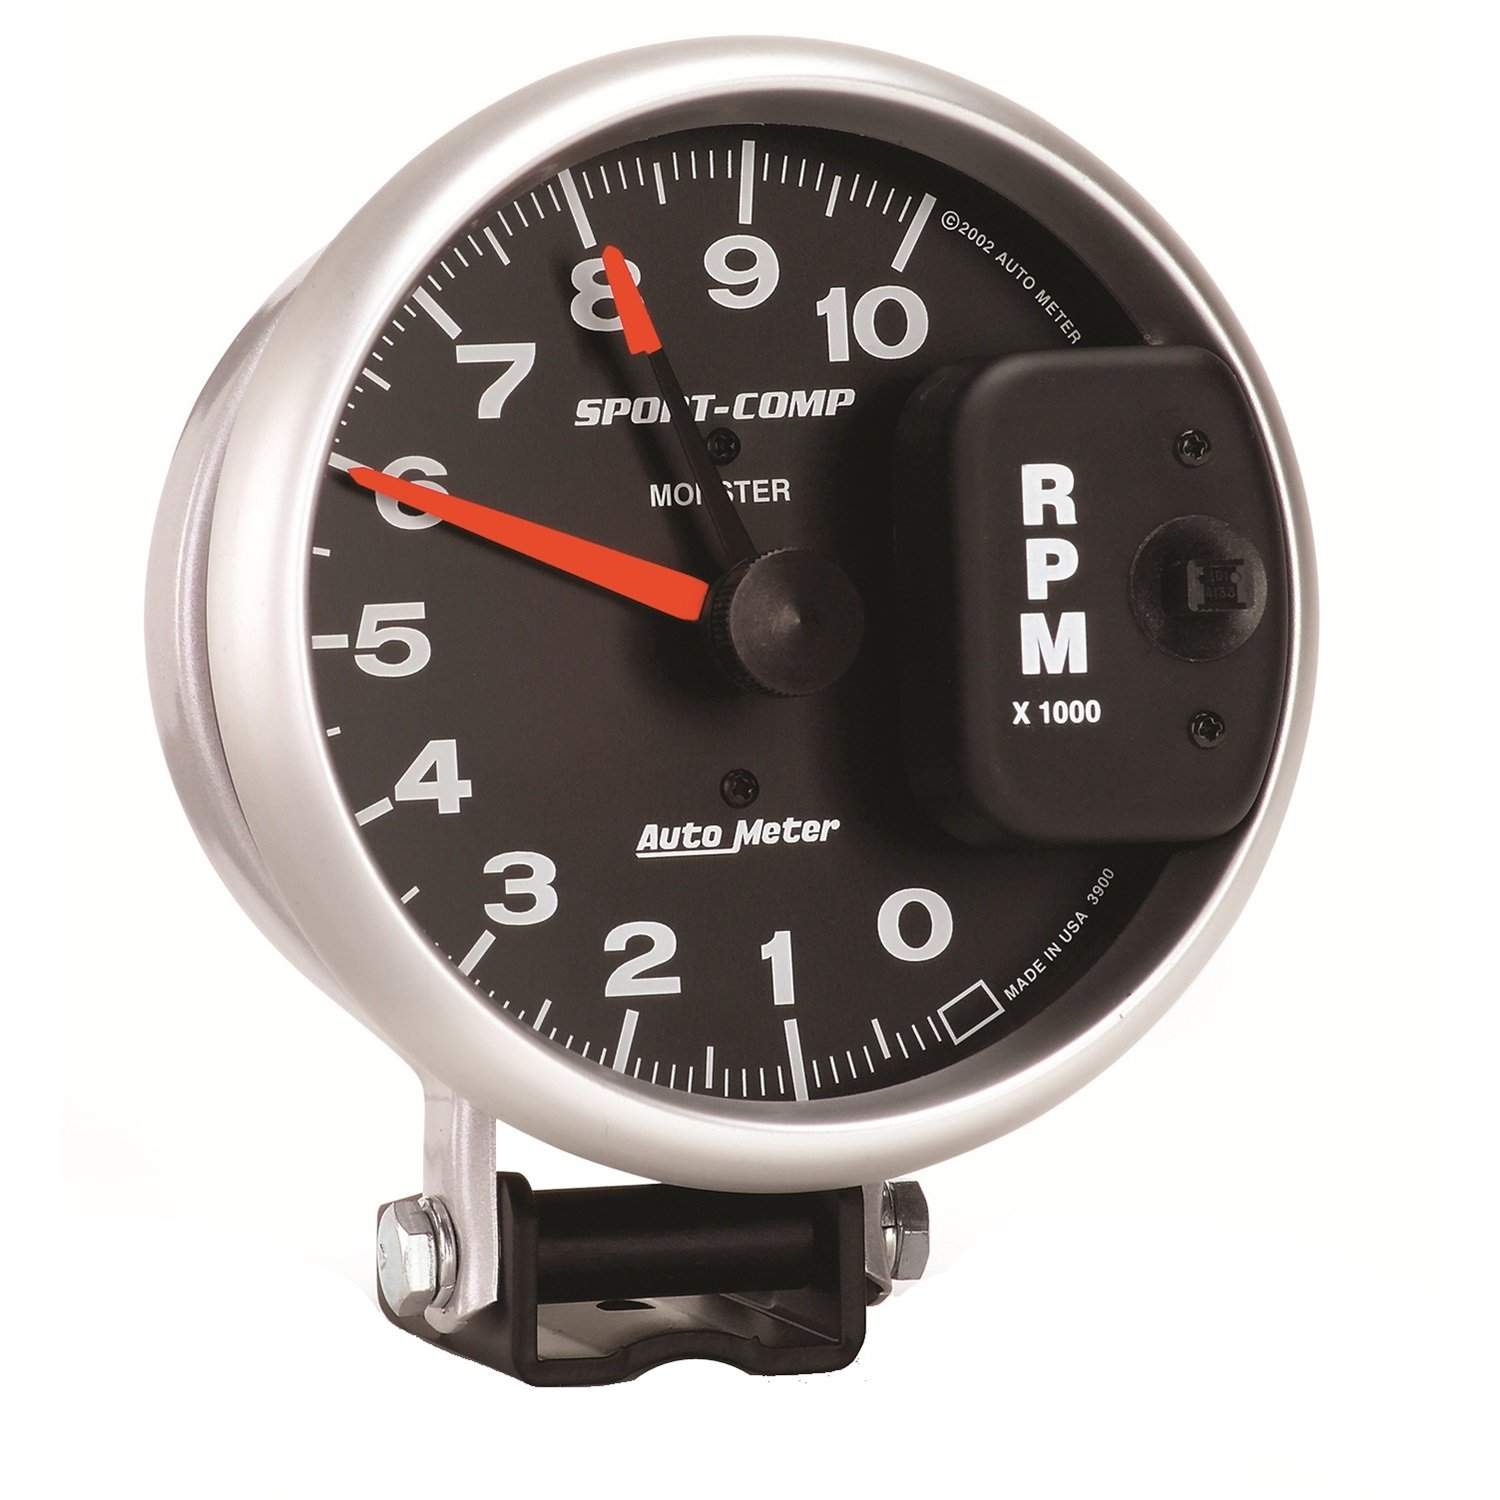 71HwLDUjswL._SL1500_ amazon com auto meter 3900 sport comp monster tachometer automotive auto meter sport comp tach wiring at crackthecode.co